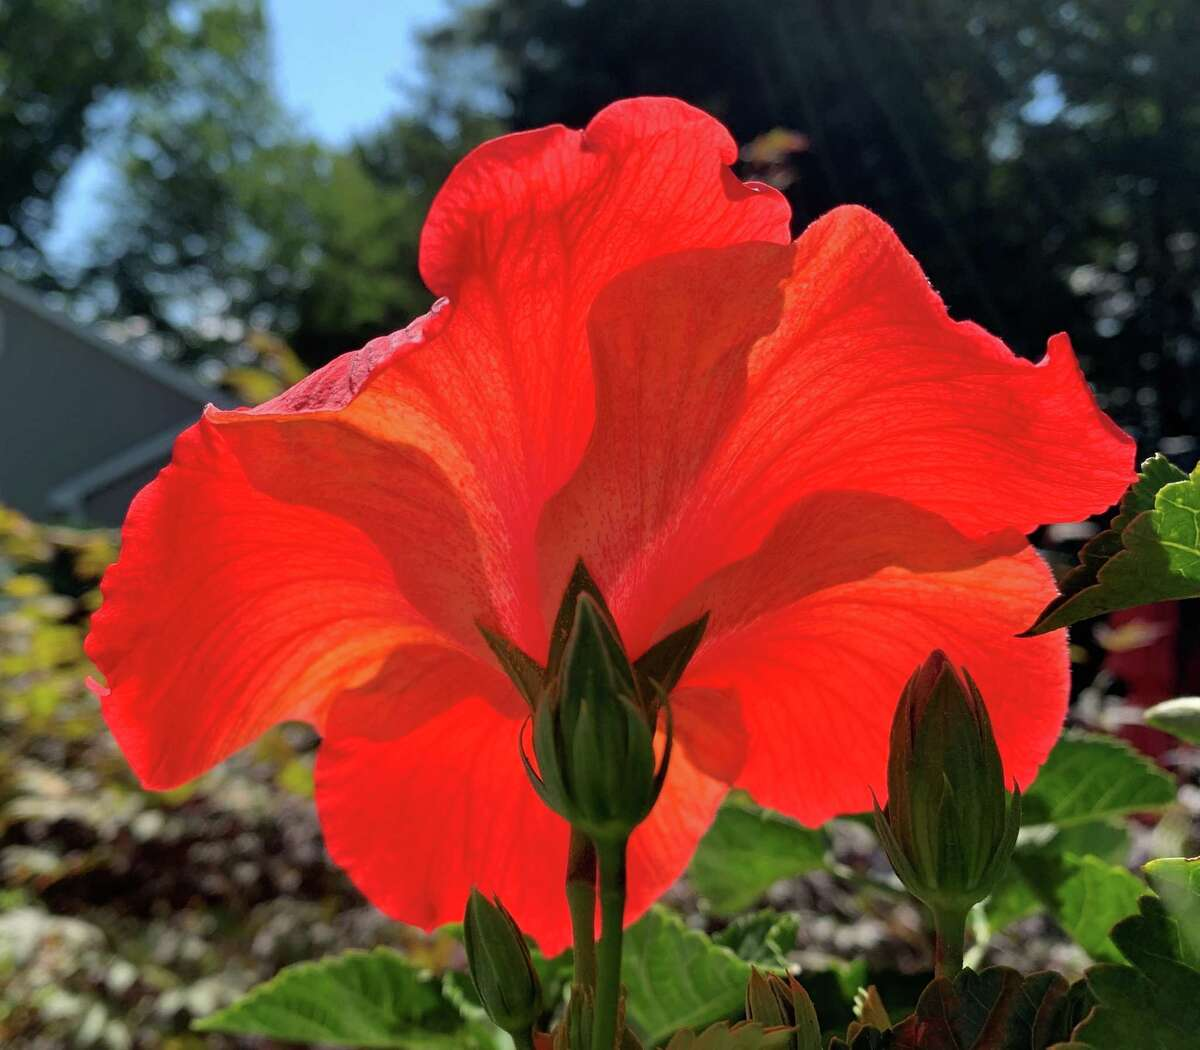 Tim Wiles from Guilderland with a shot of a hibiscus blossom from his backyard in the morning.